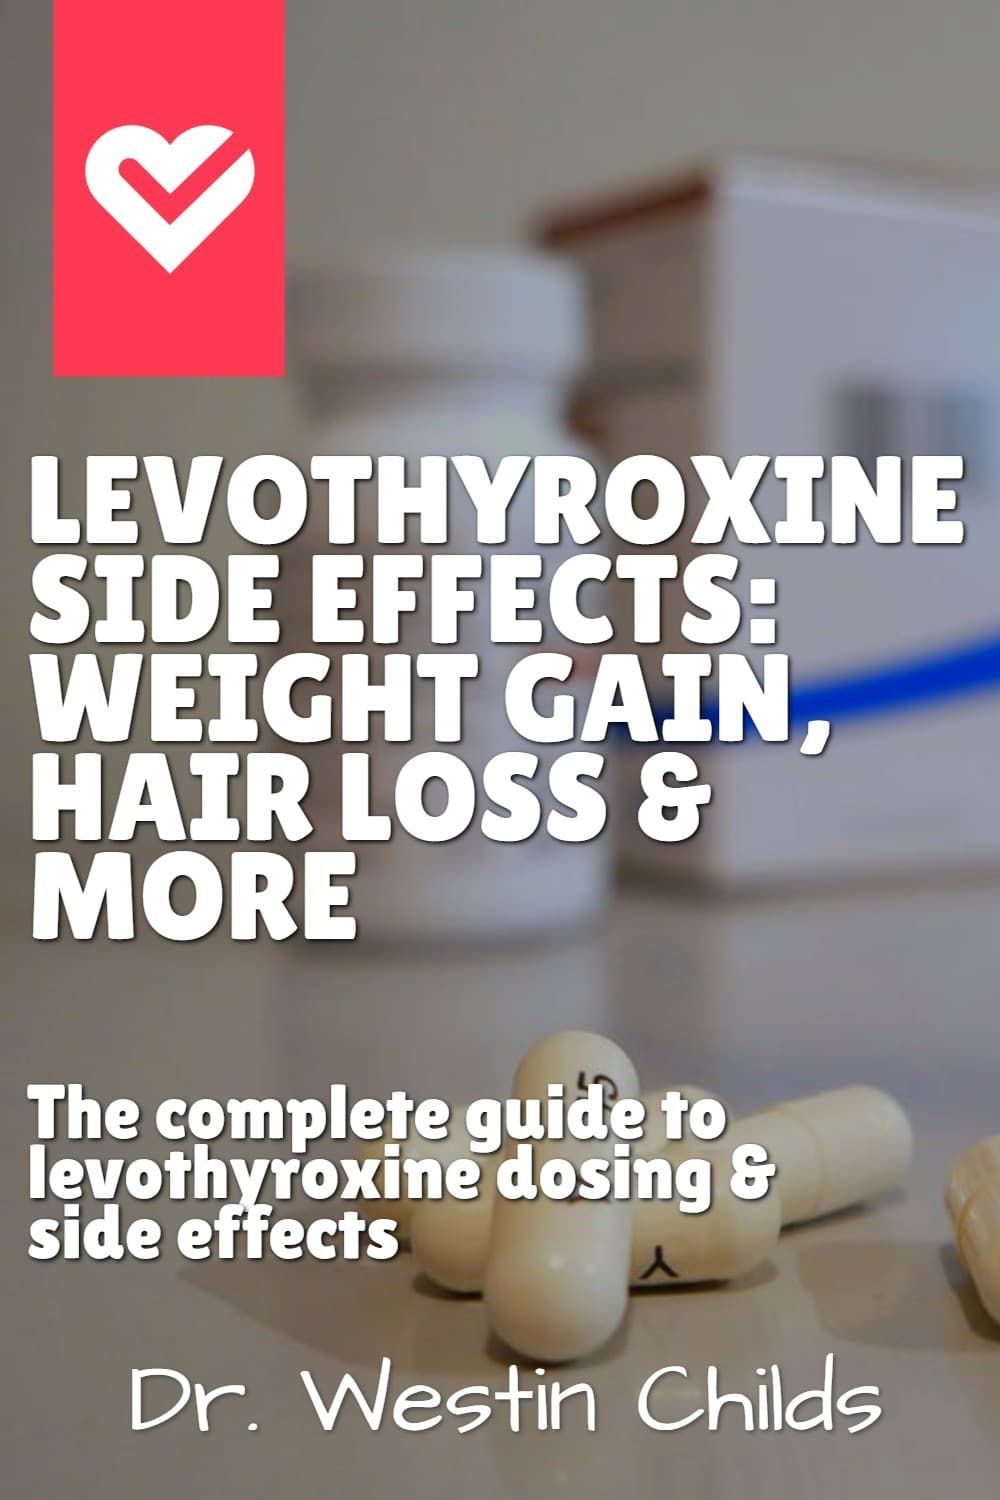 Levothyroxine Side Effects: Hair Loss, Weight Gain, Weight Loss & More